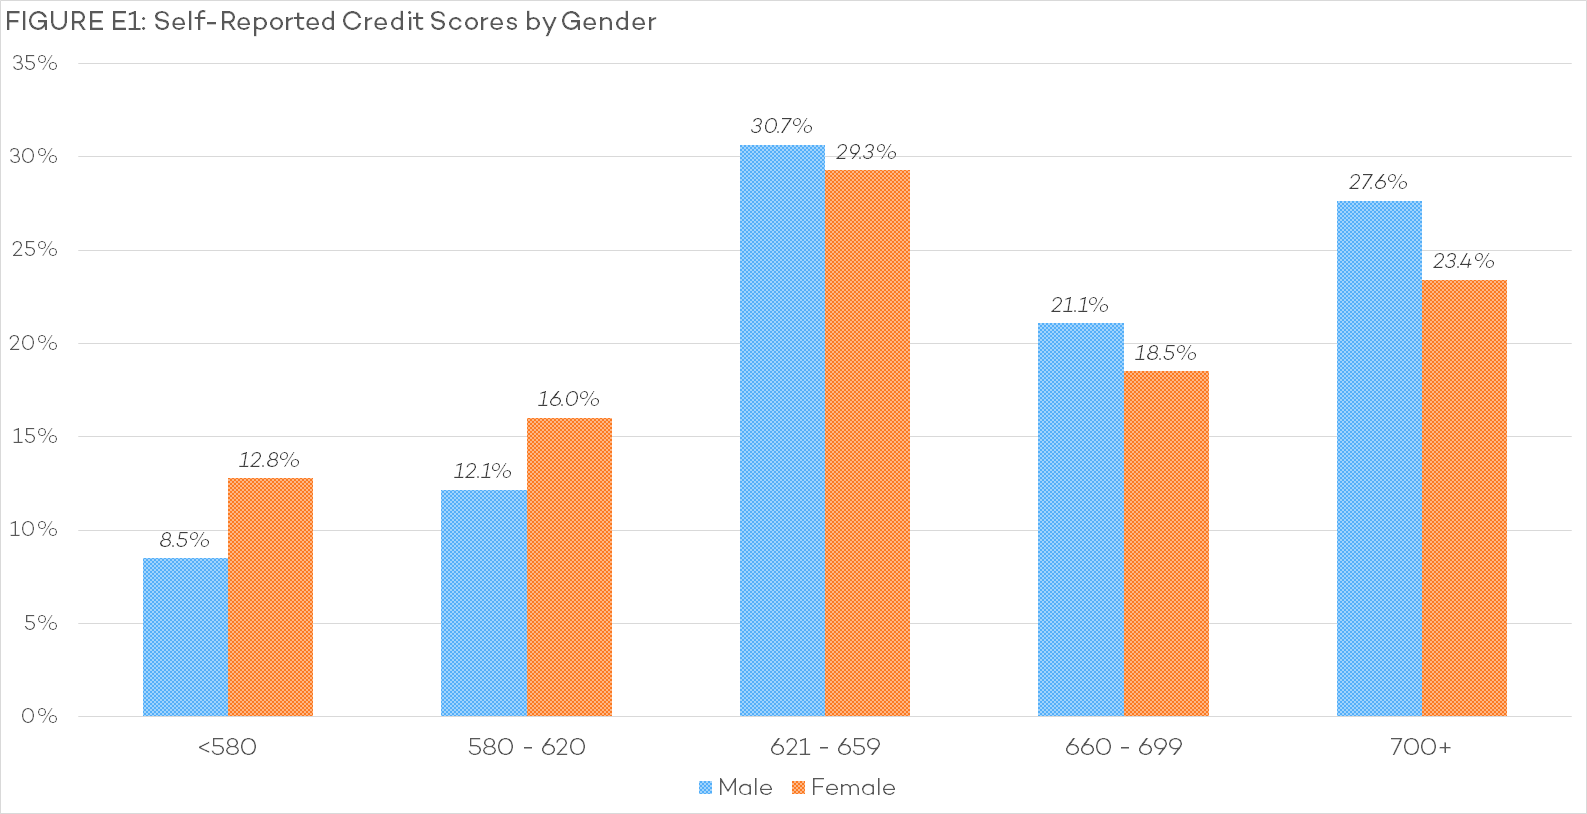 E1 - Self-Reported Credit Scores by Gender